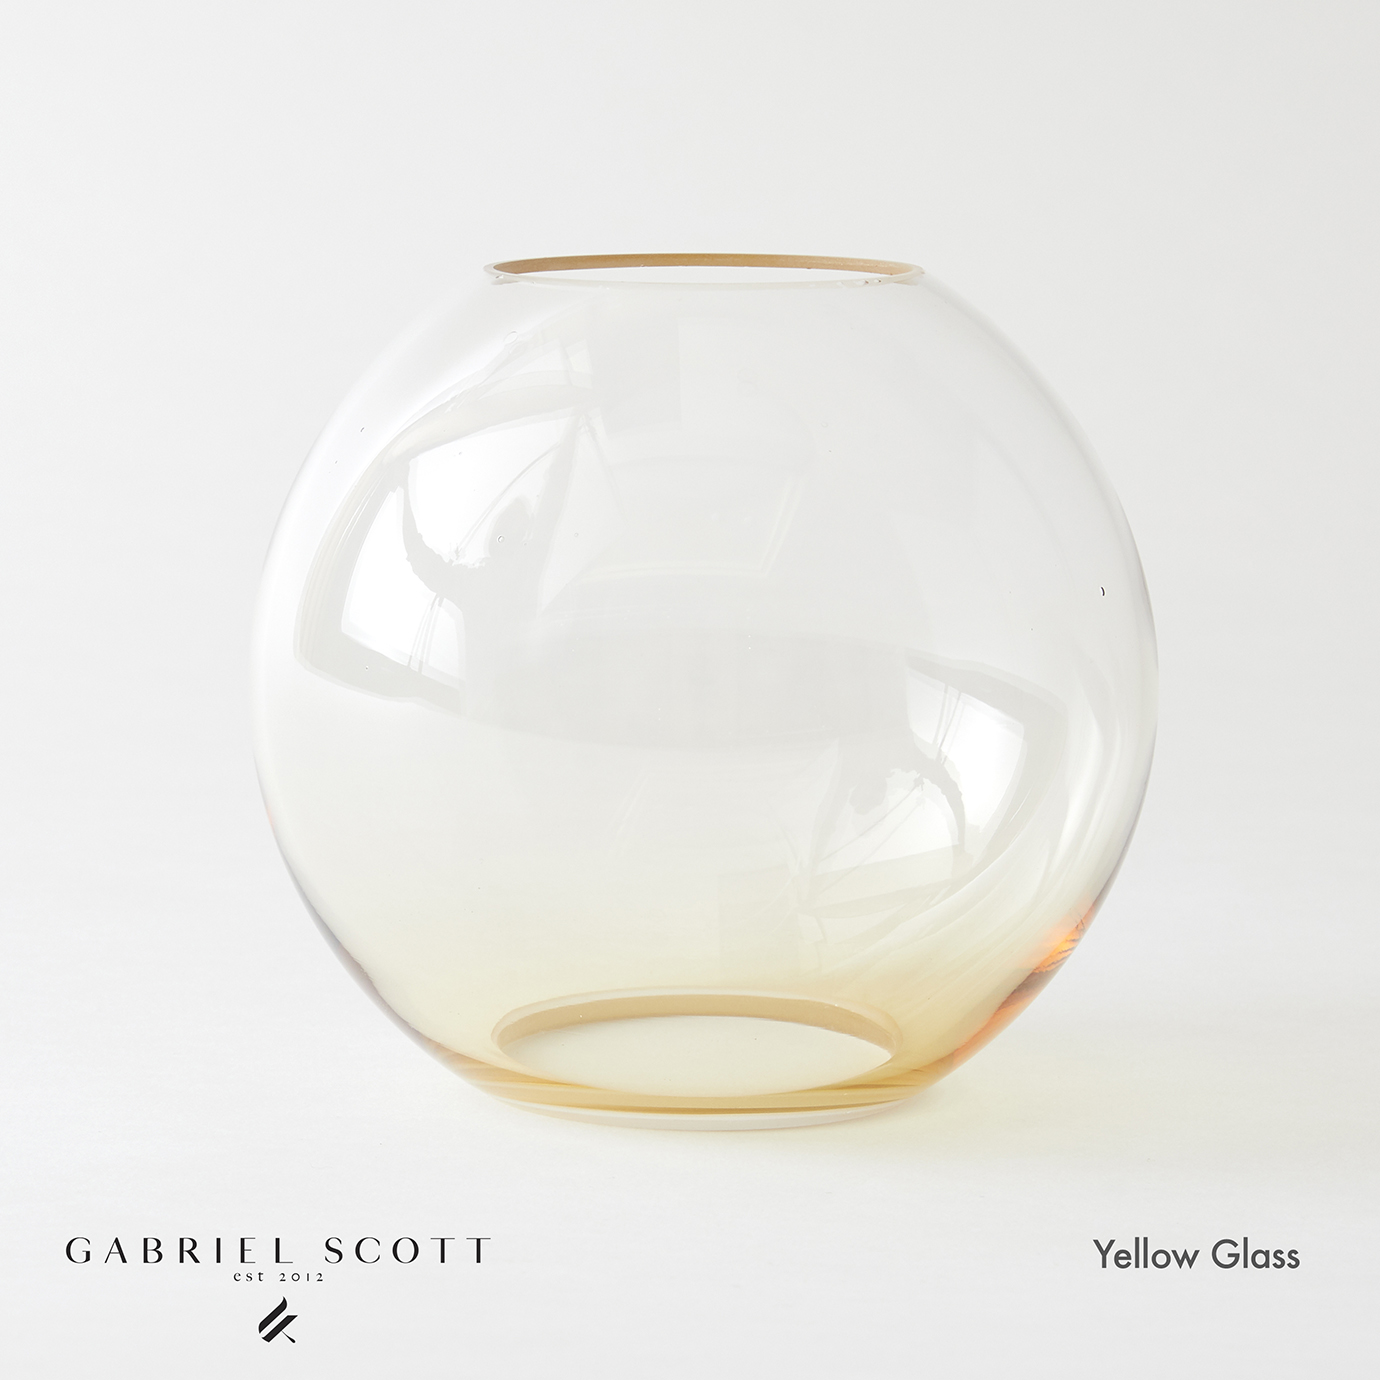 Yellow Glass - GABRIEL SCOTT.jpg